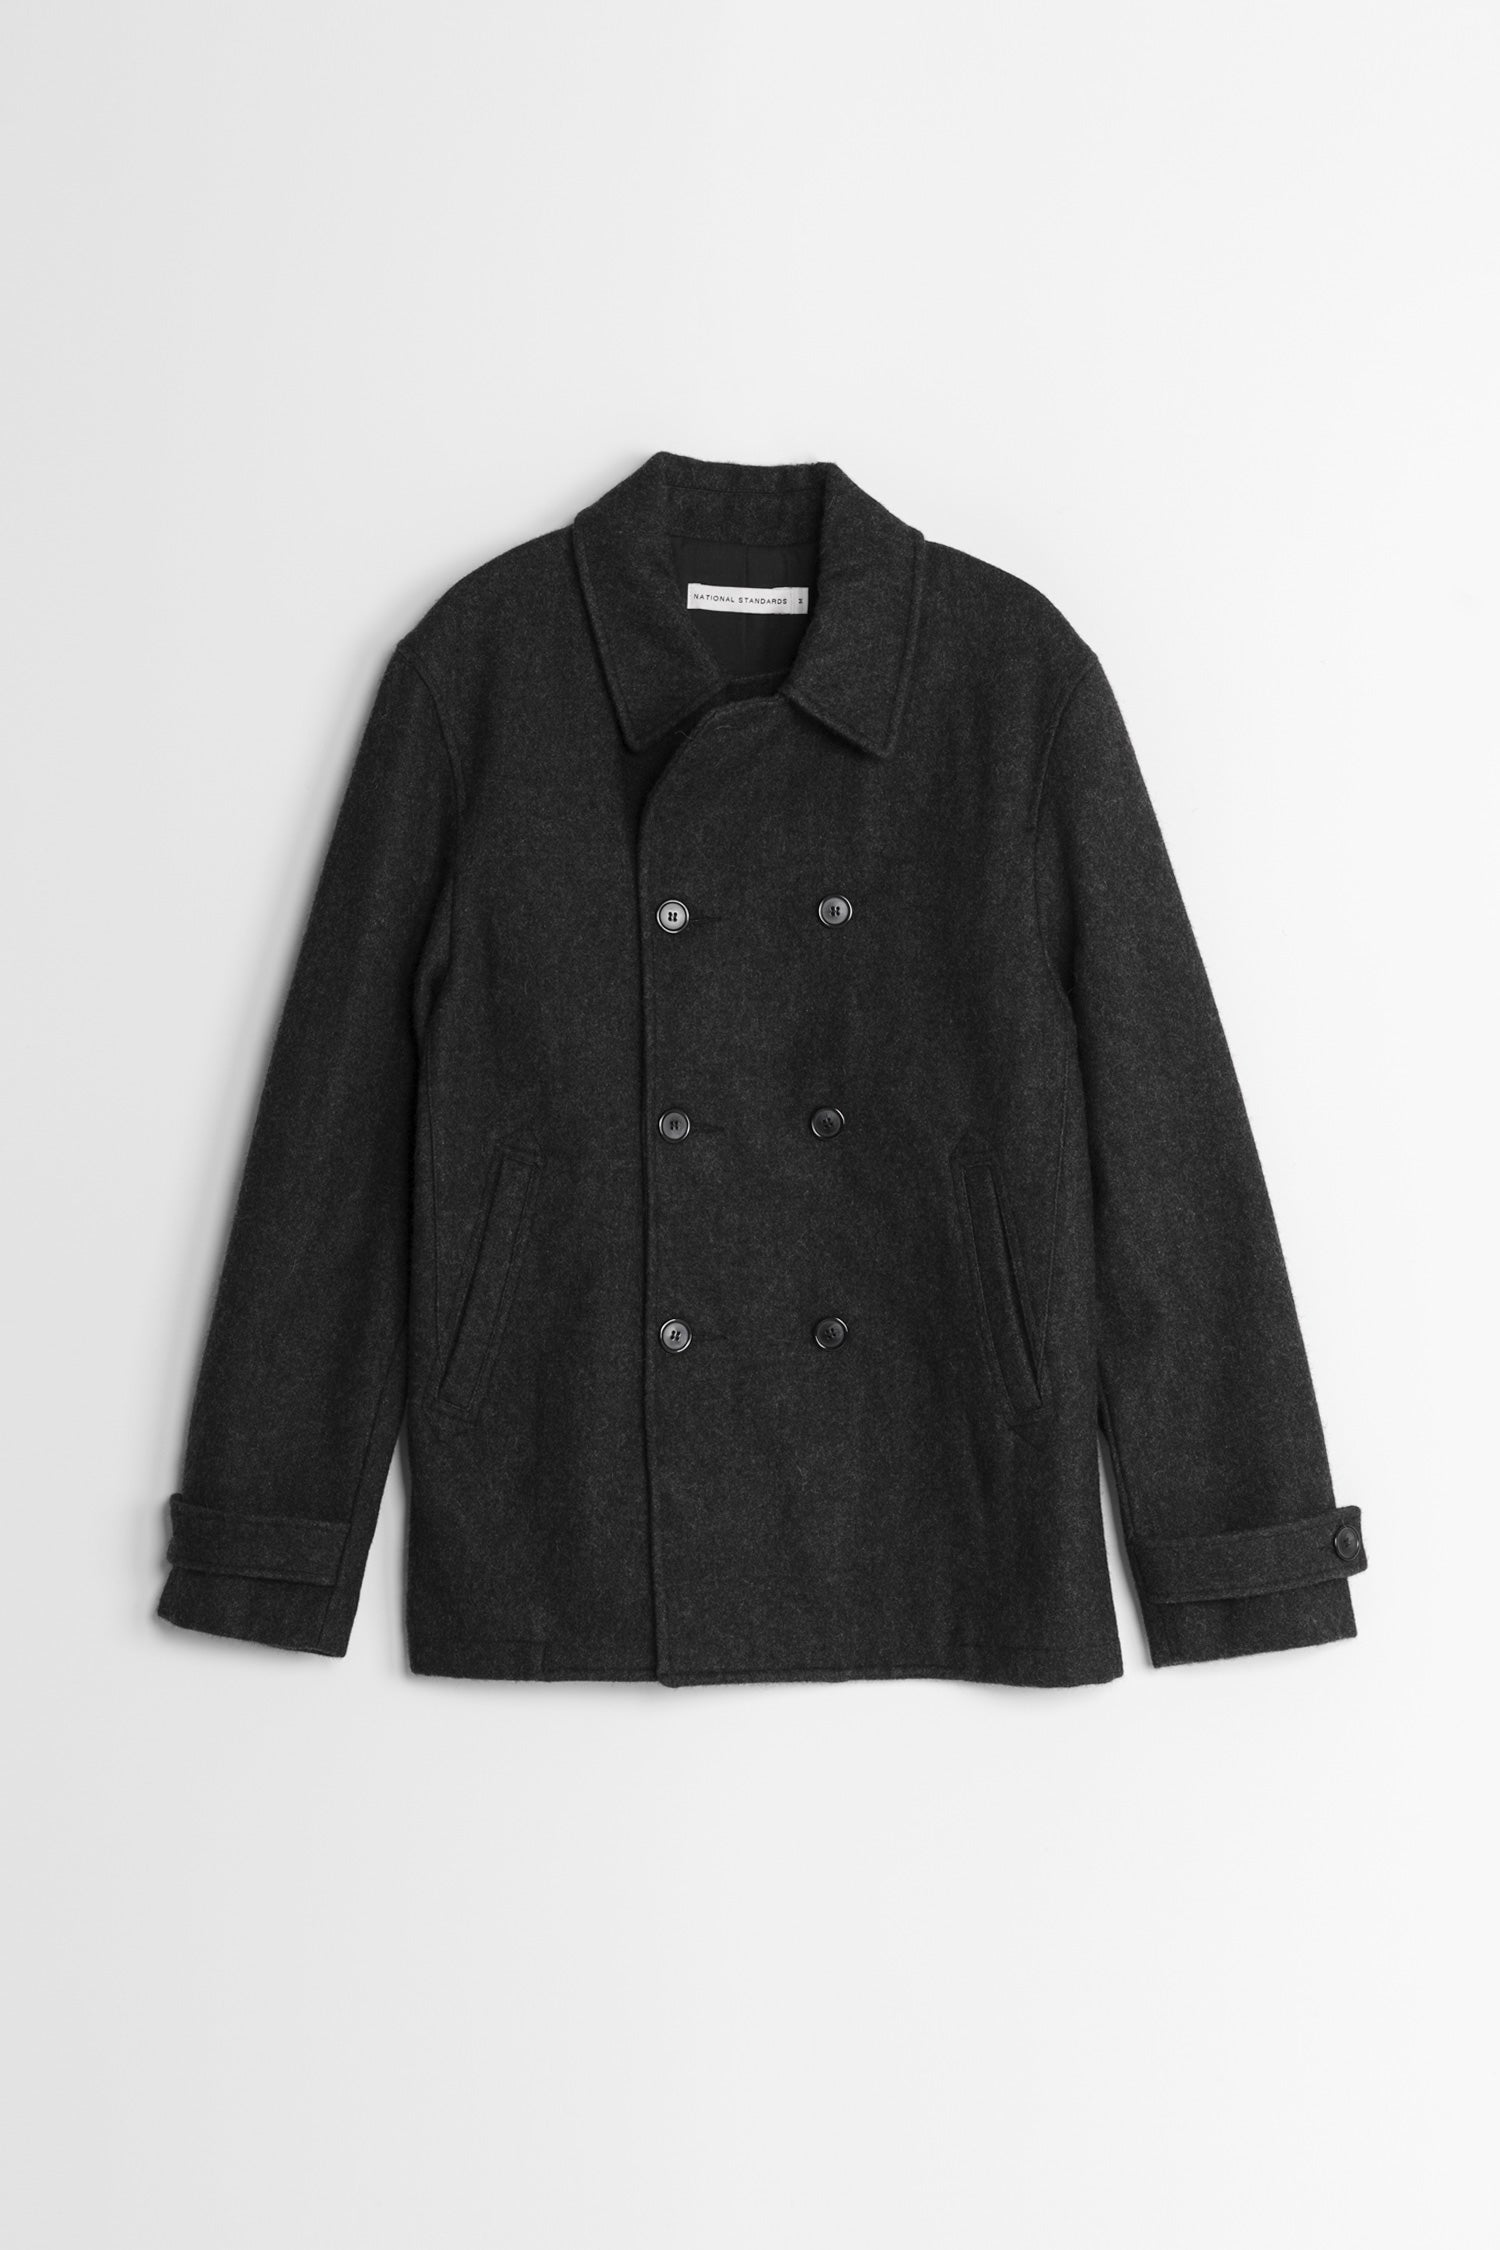 Japanese Melton Pea Coat in Grey